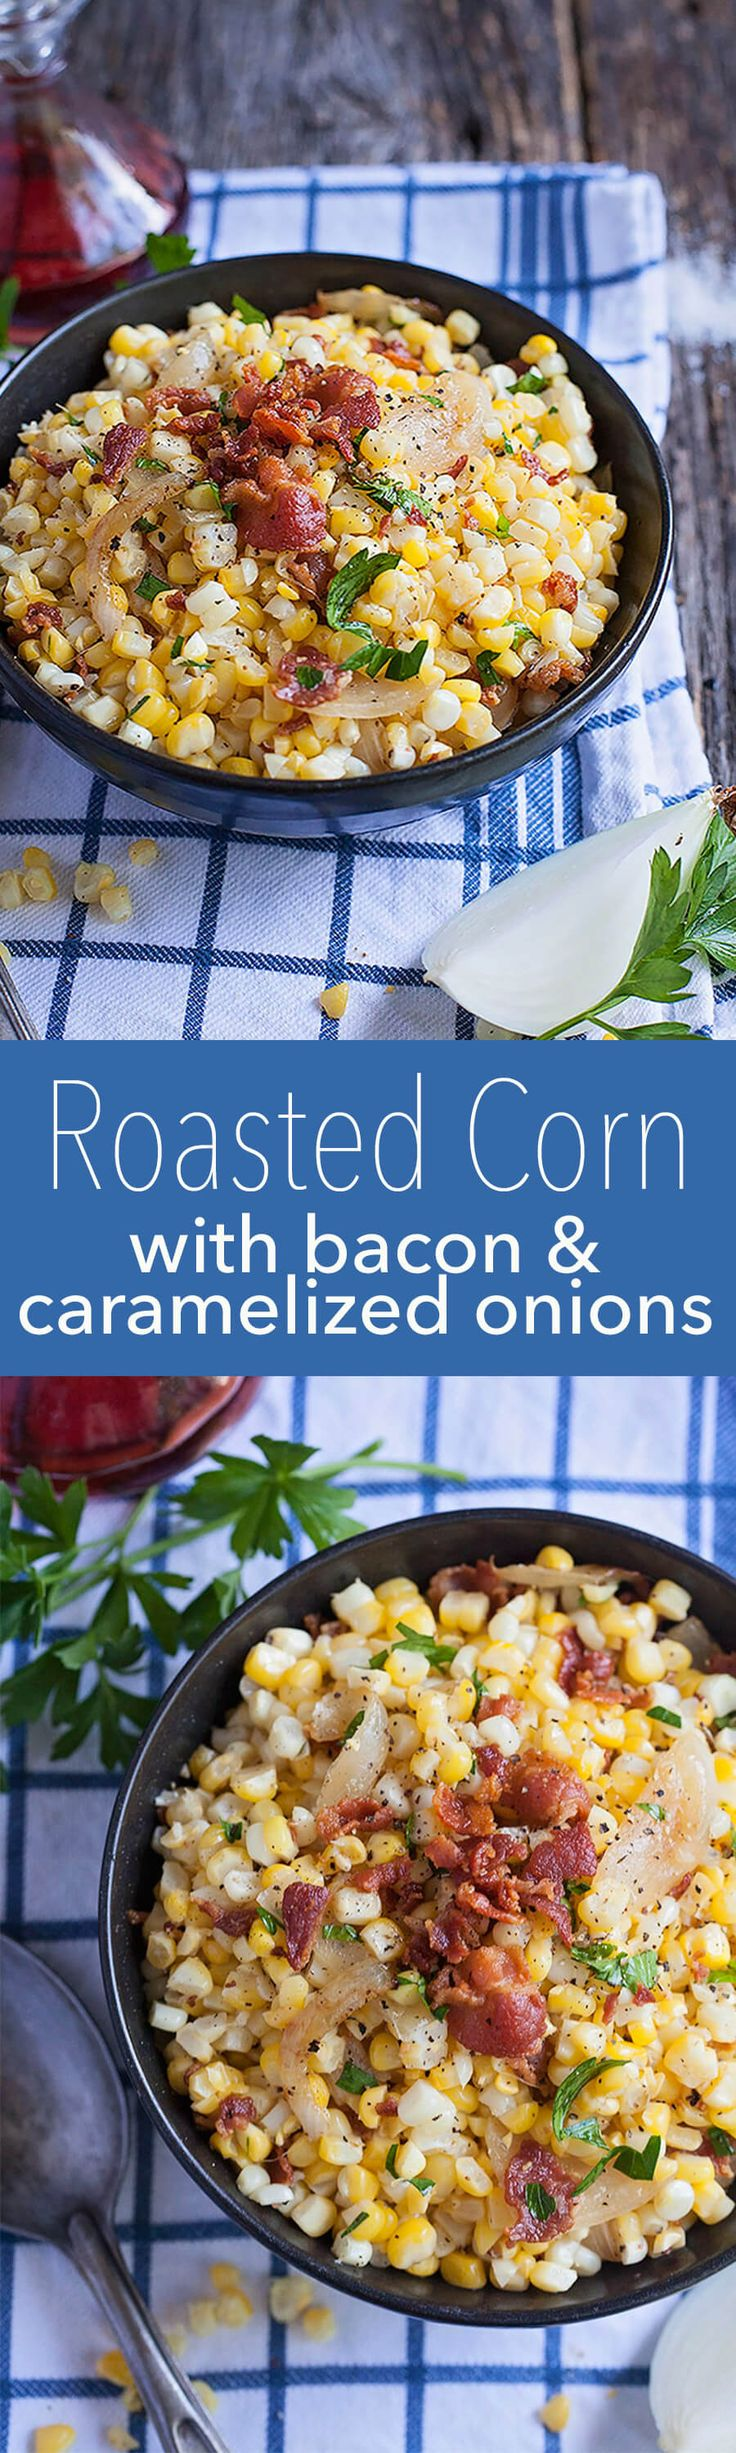 This tantalizing Roasted Corn with Bacon and Caramelized Onions should be your next side dish. It is amazing. It disappears quick!